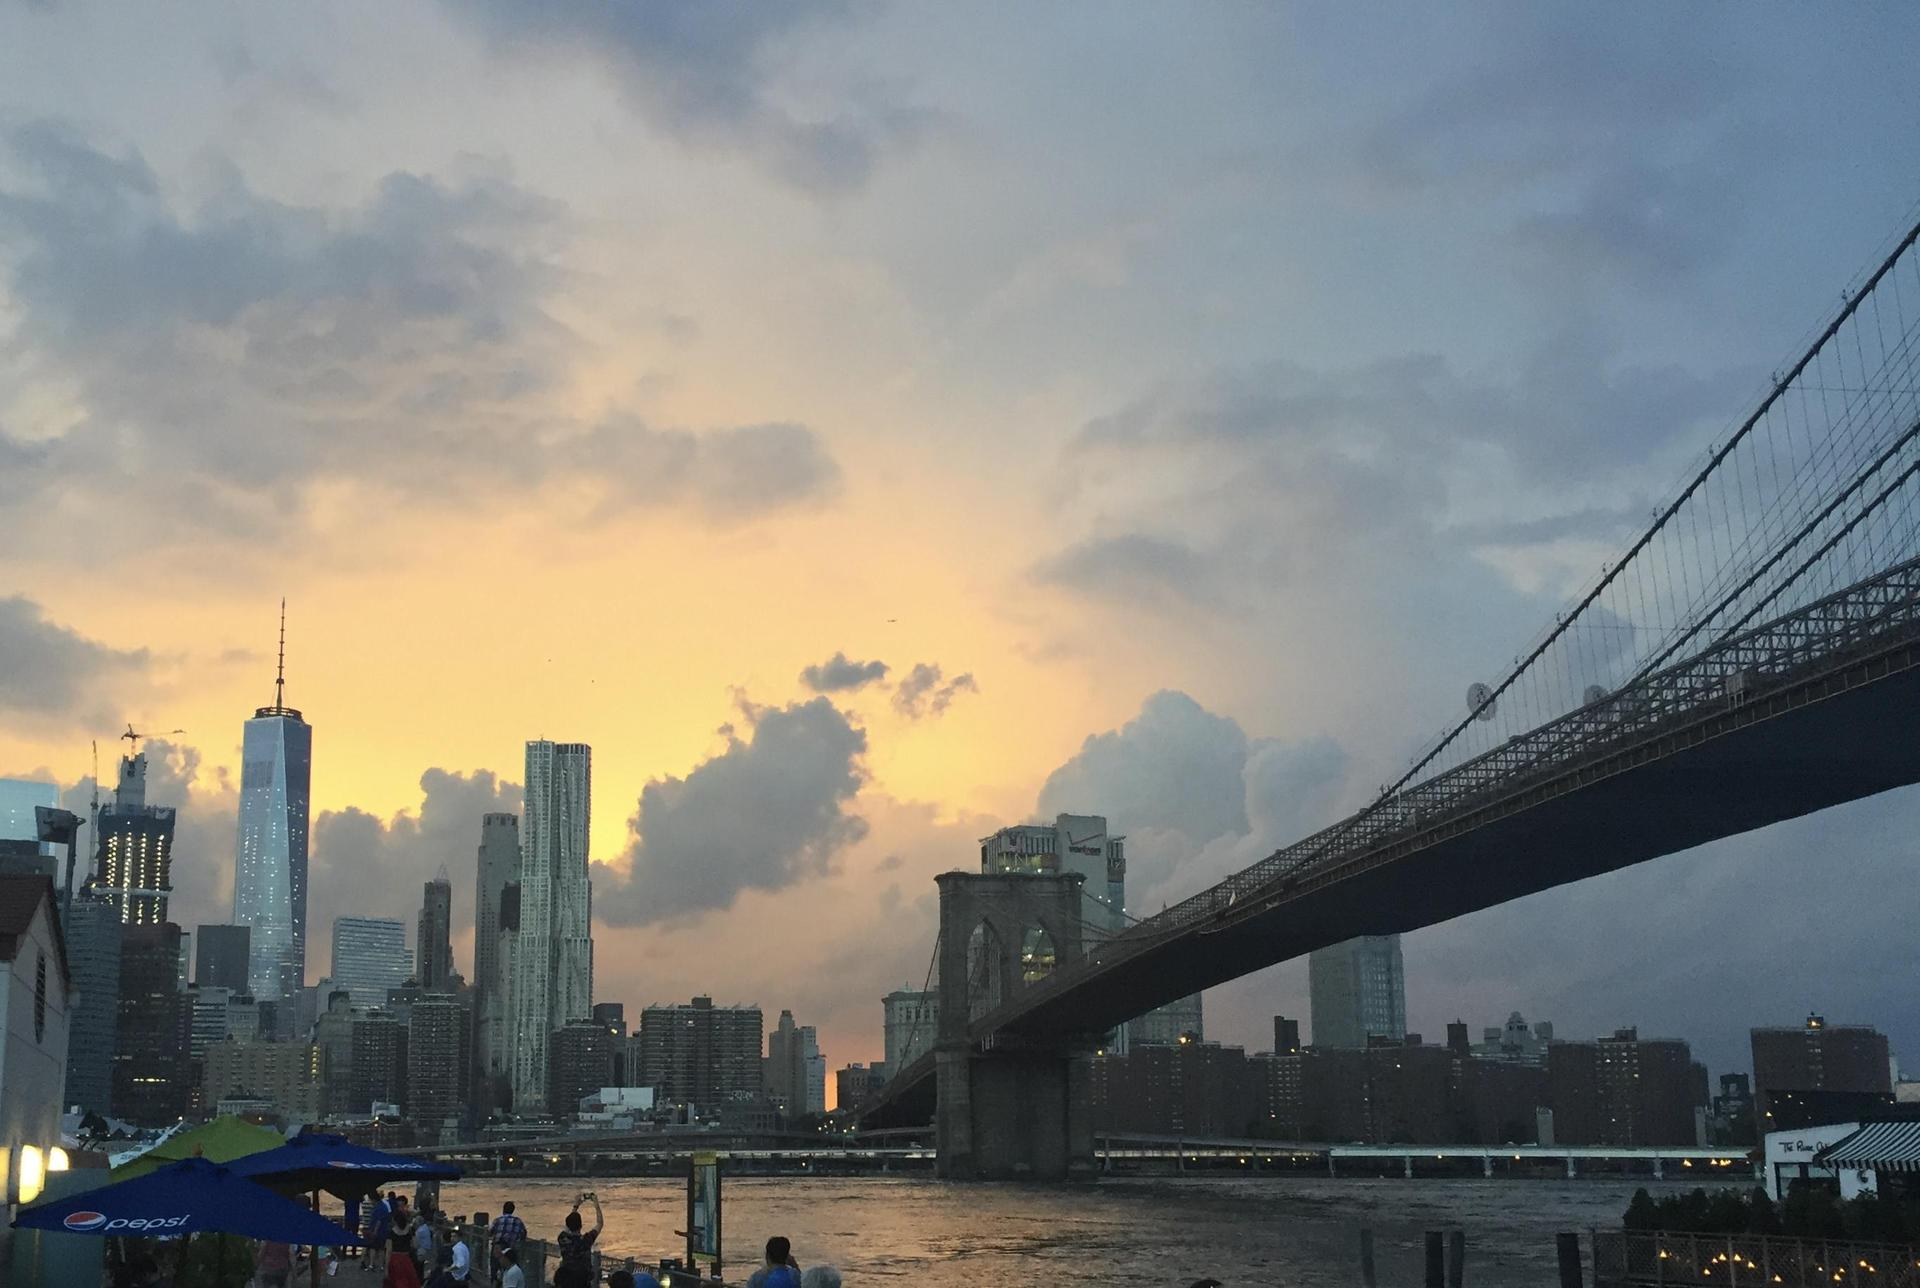 sunset view of Brooklyn Bridge from Brooklyn